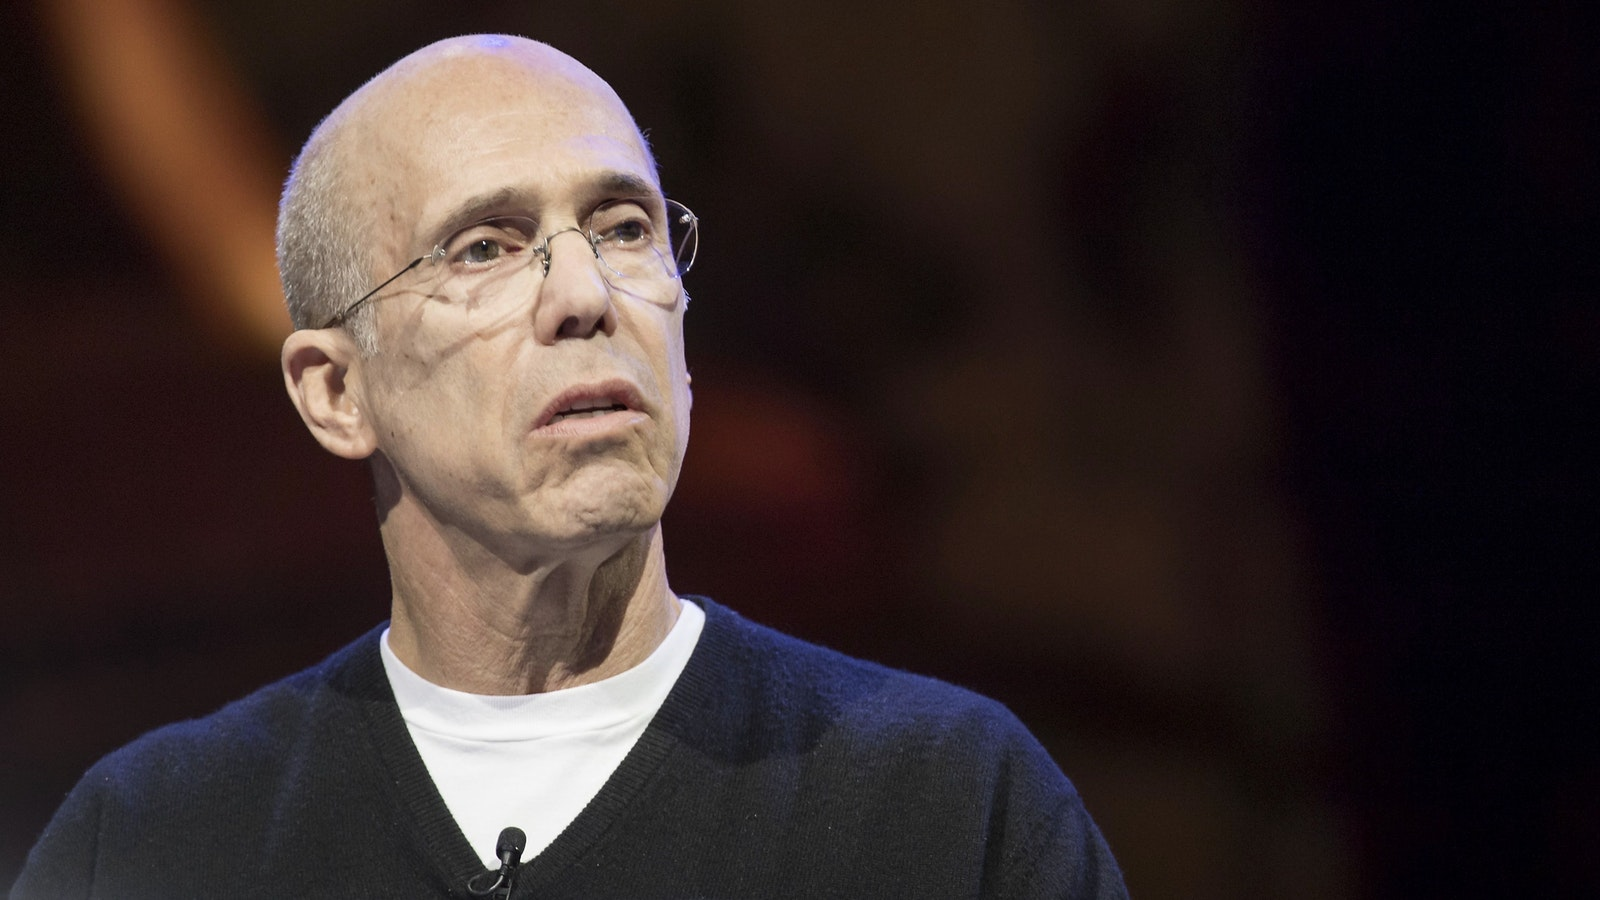 Jeffrey Katzenberg. Photo by Bloomberg